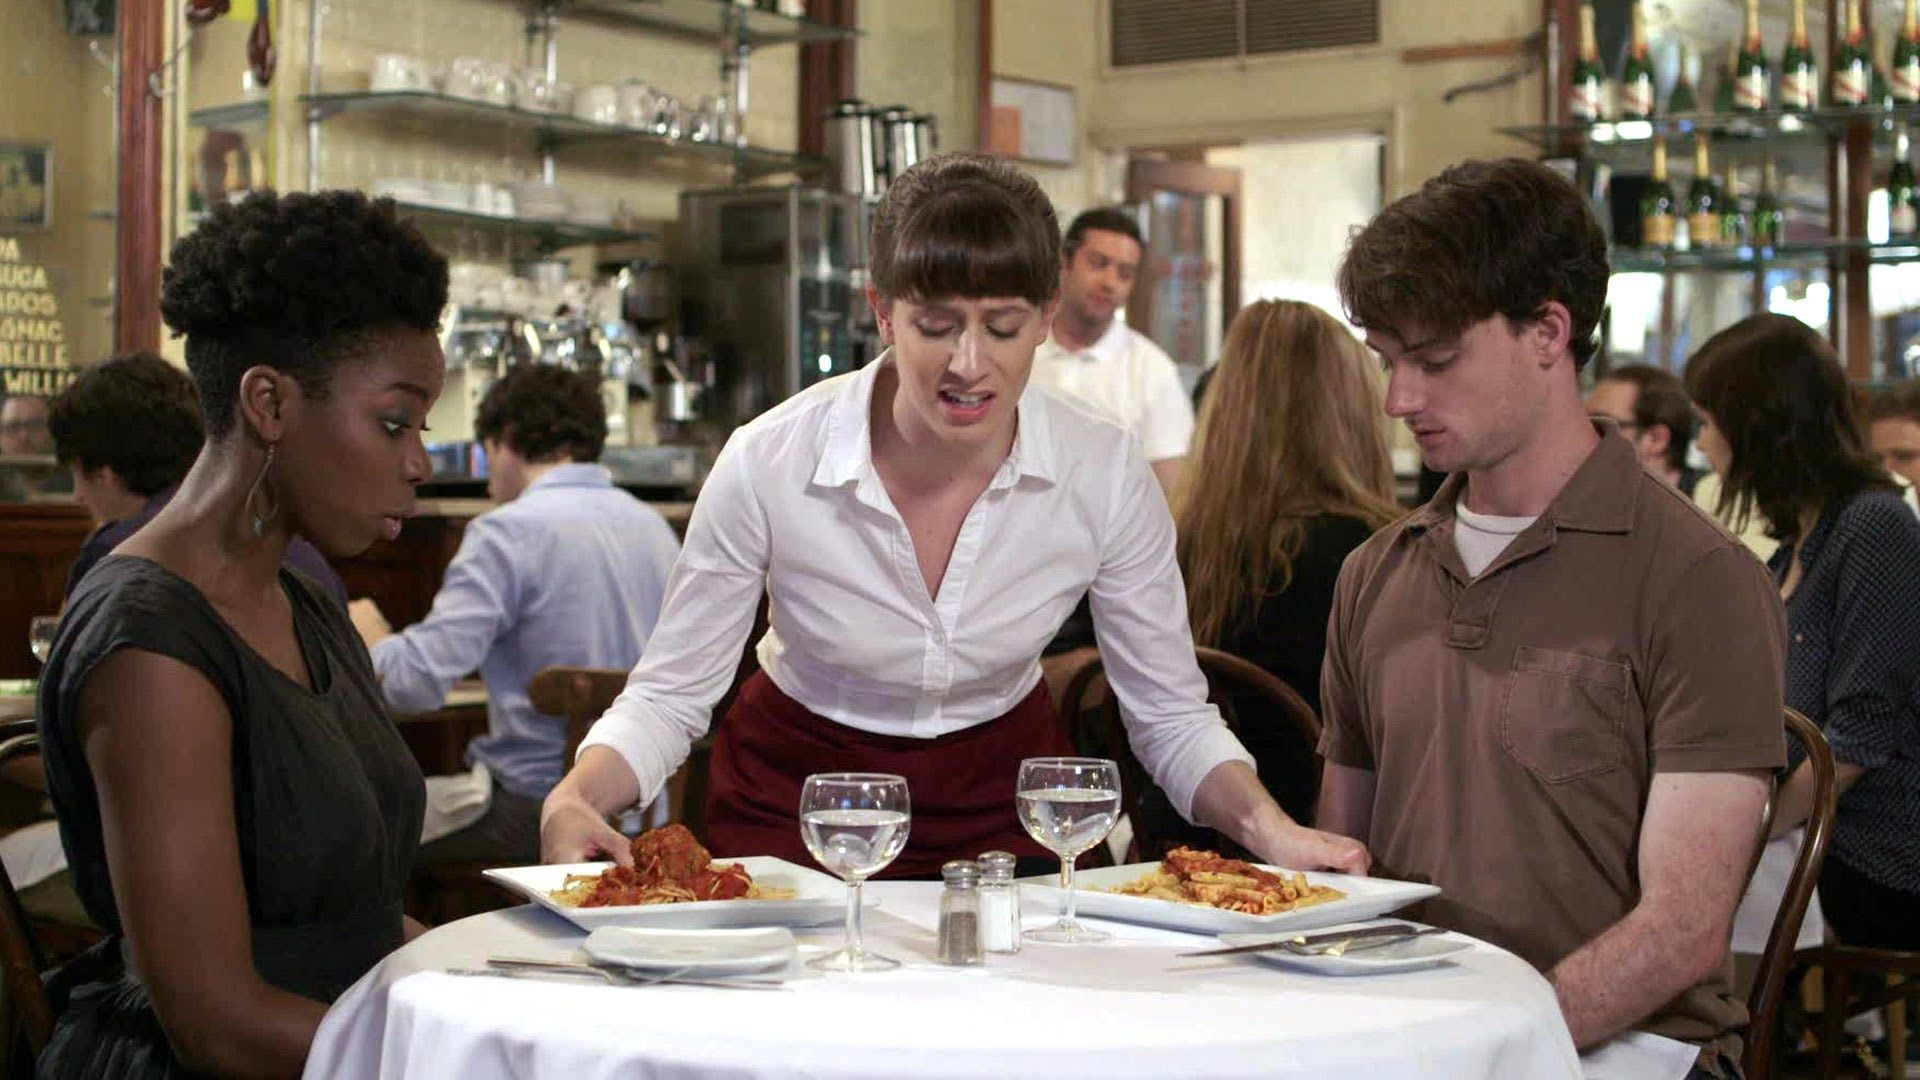 How to Handle Guest Complaints in Your Restaurant